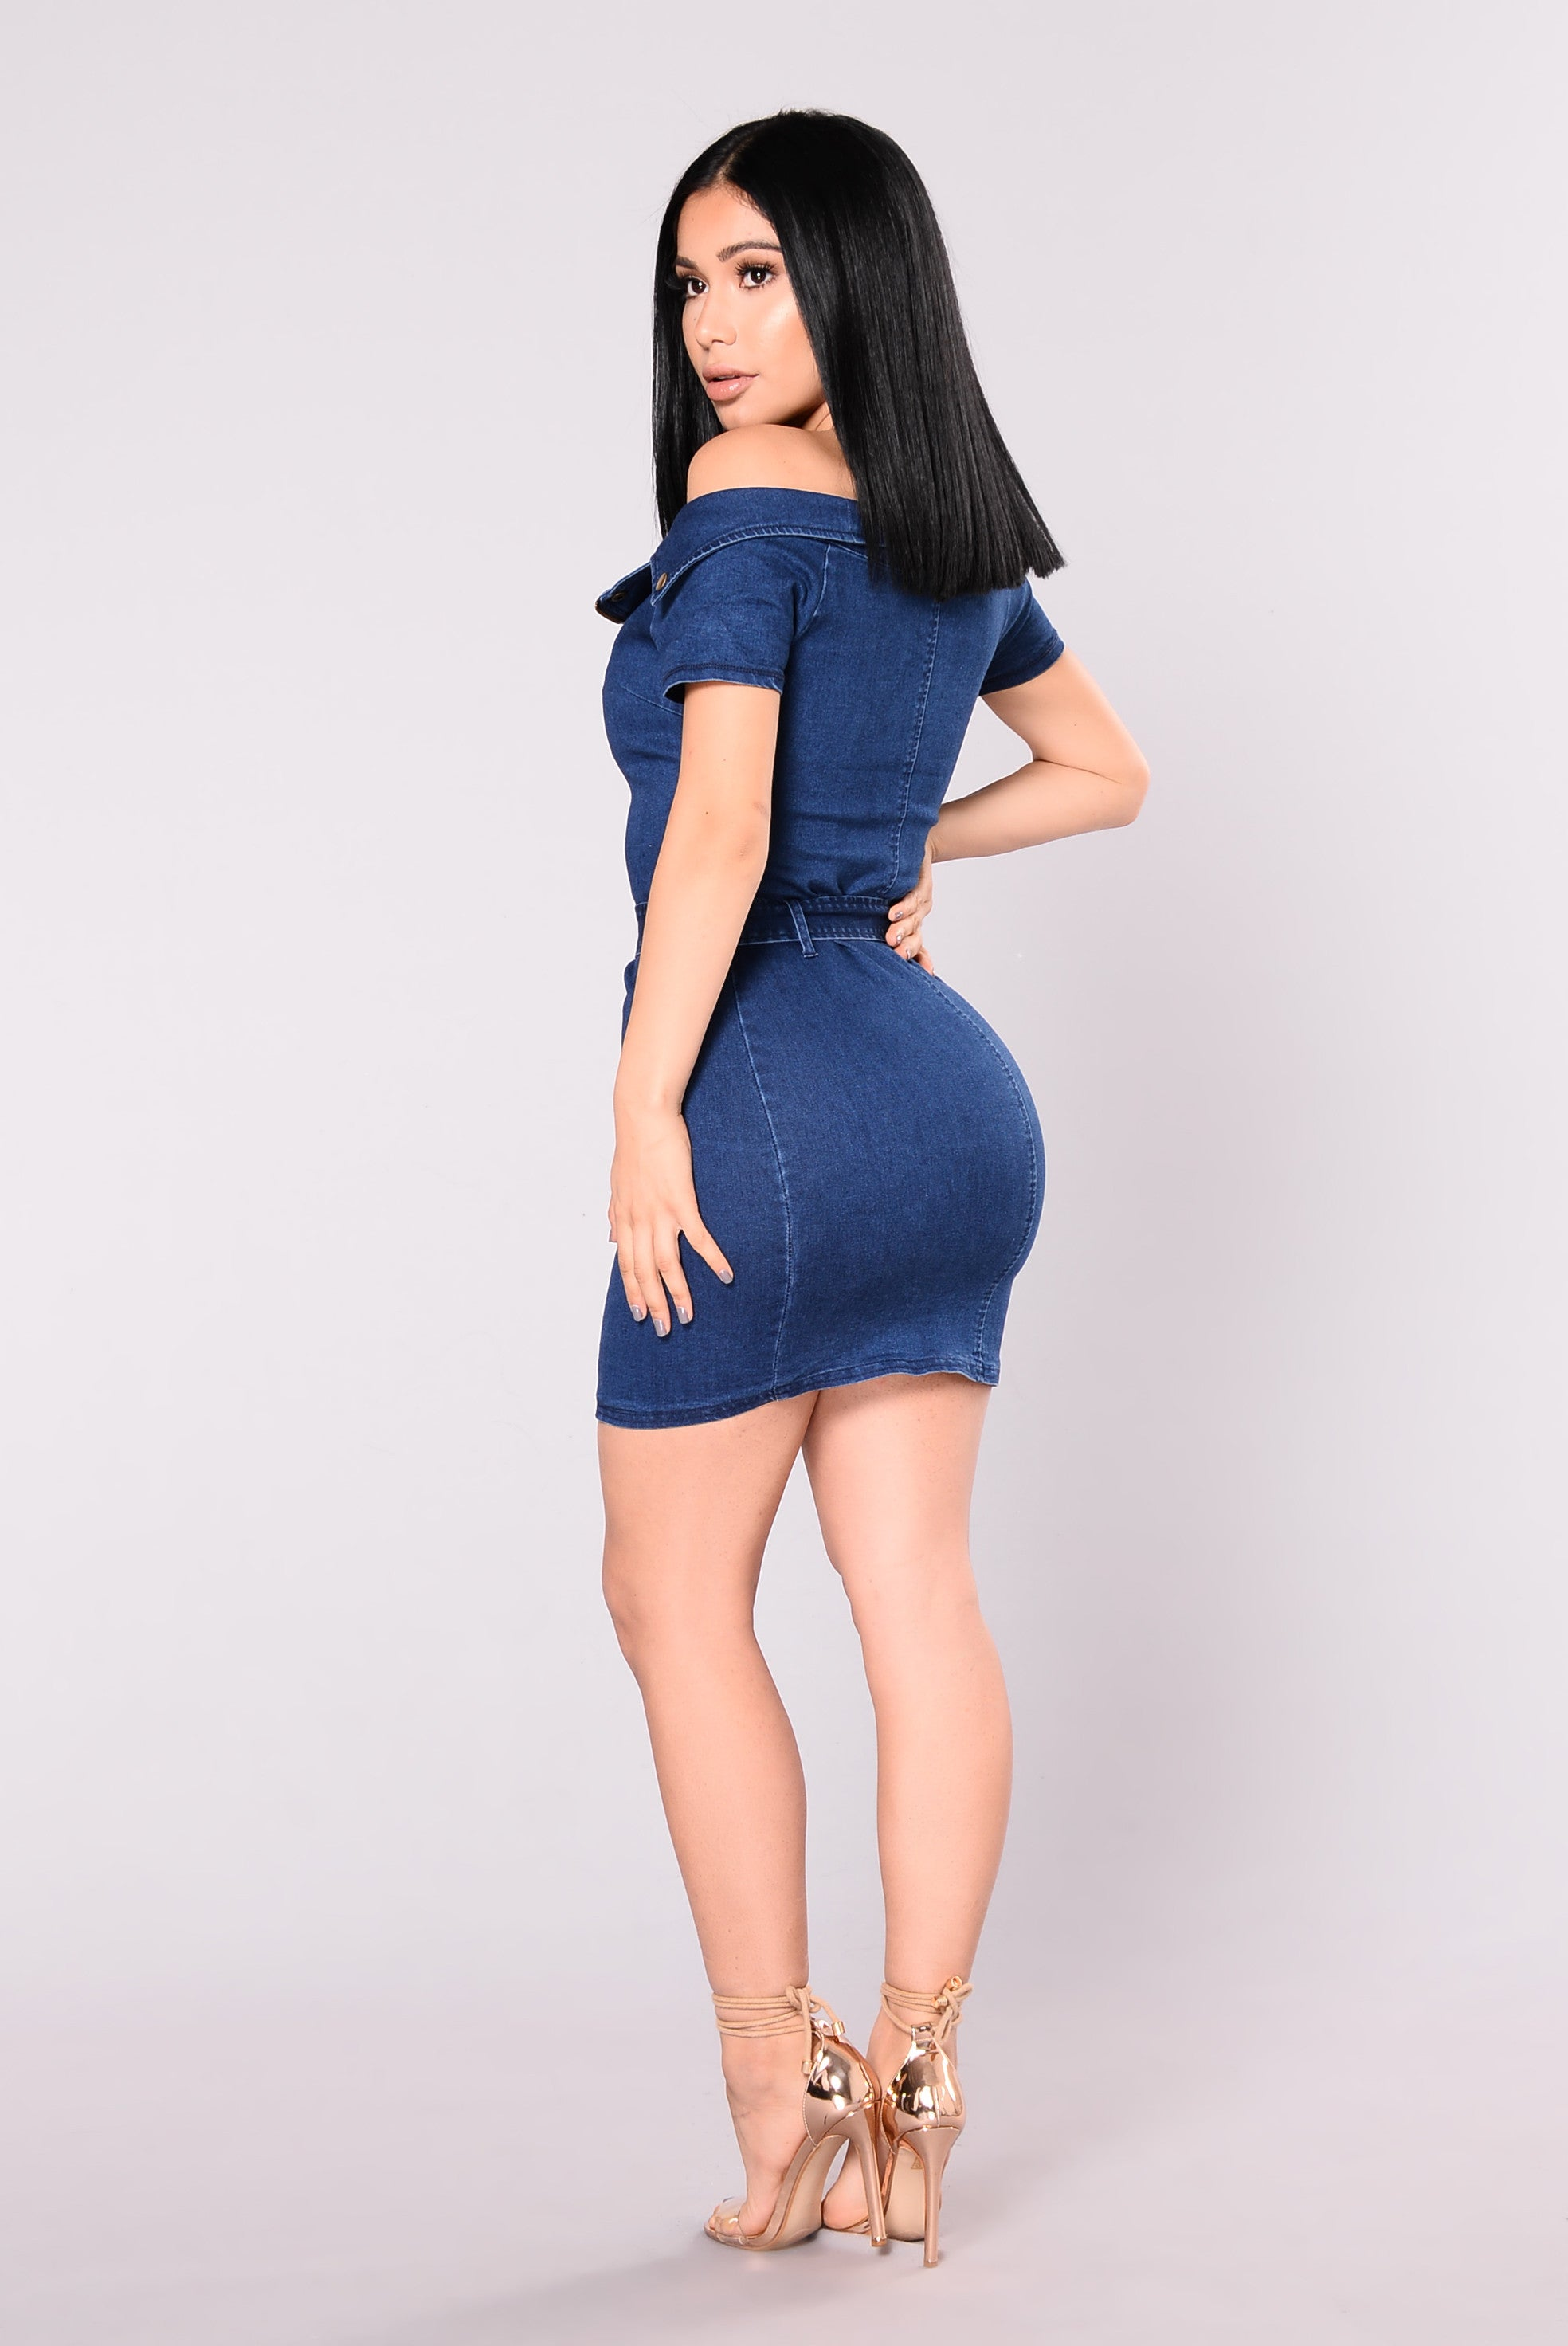 There s nothing like a form-fitting pair of pants, and from casual to dressy, denim to lounge, Red Dress has a wide selection of pleasing pants.